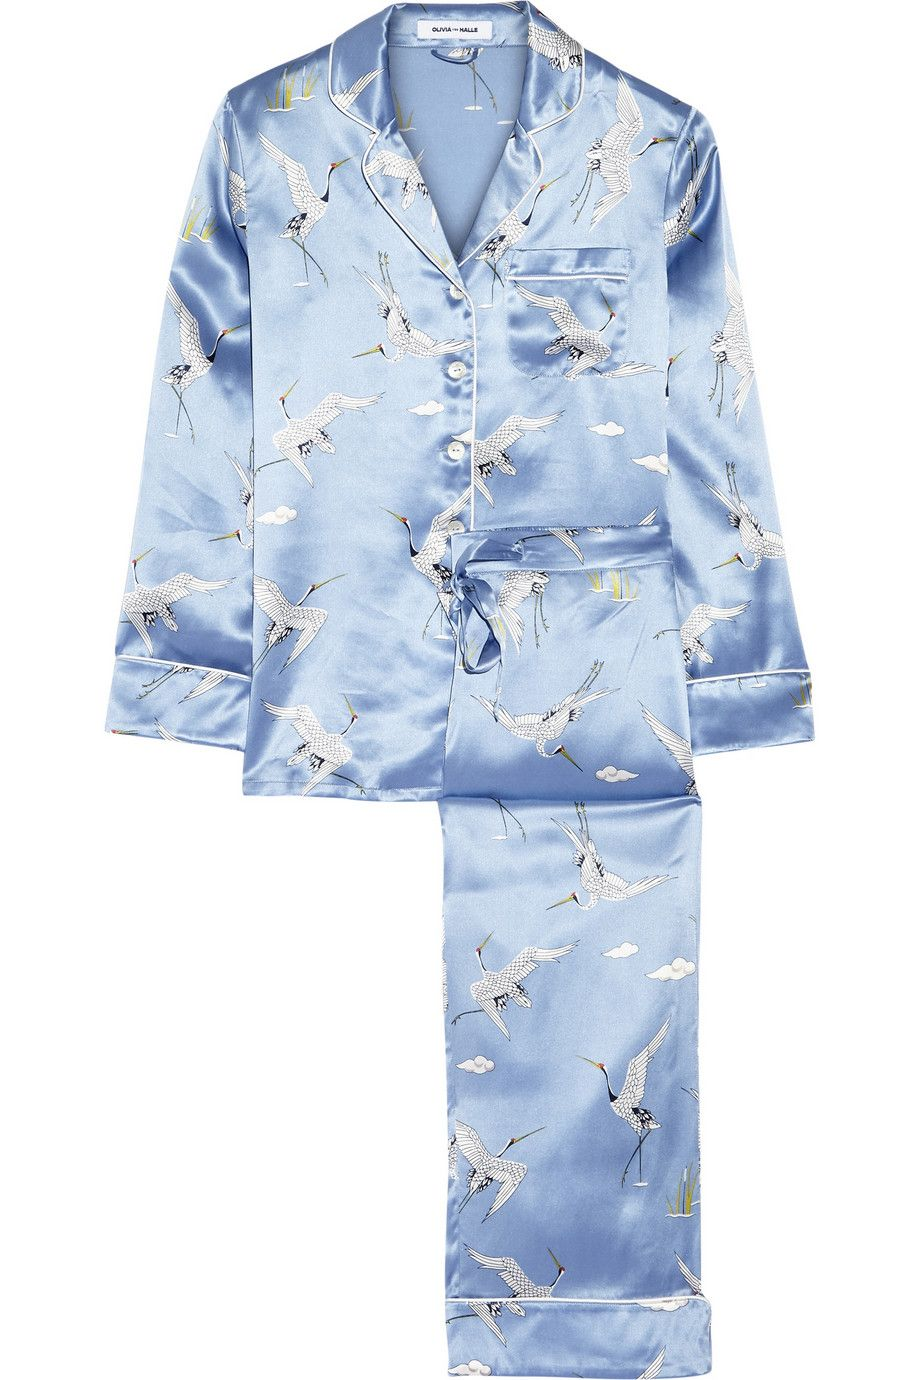 "<p>Olivia von Halle Lila Printed Silk-Satin Pajama Set, $525&#x3B; <a href=""http://www.net-a-porter.com/us/en/product/657599/olivia_von_halle/lila-printed-silk-satin-pajama-set"">net-a-porter.com</a></p><p><strong></strong><strong><strong>How soon can I get them?</strong></strong> Order by 10AM in select cities and you can get your PJs the same exact day. </p>"